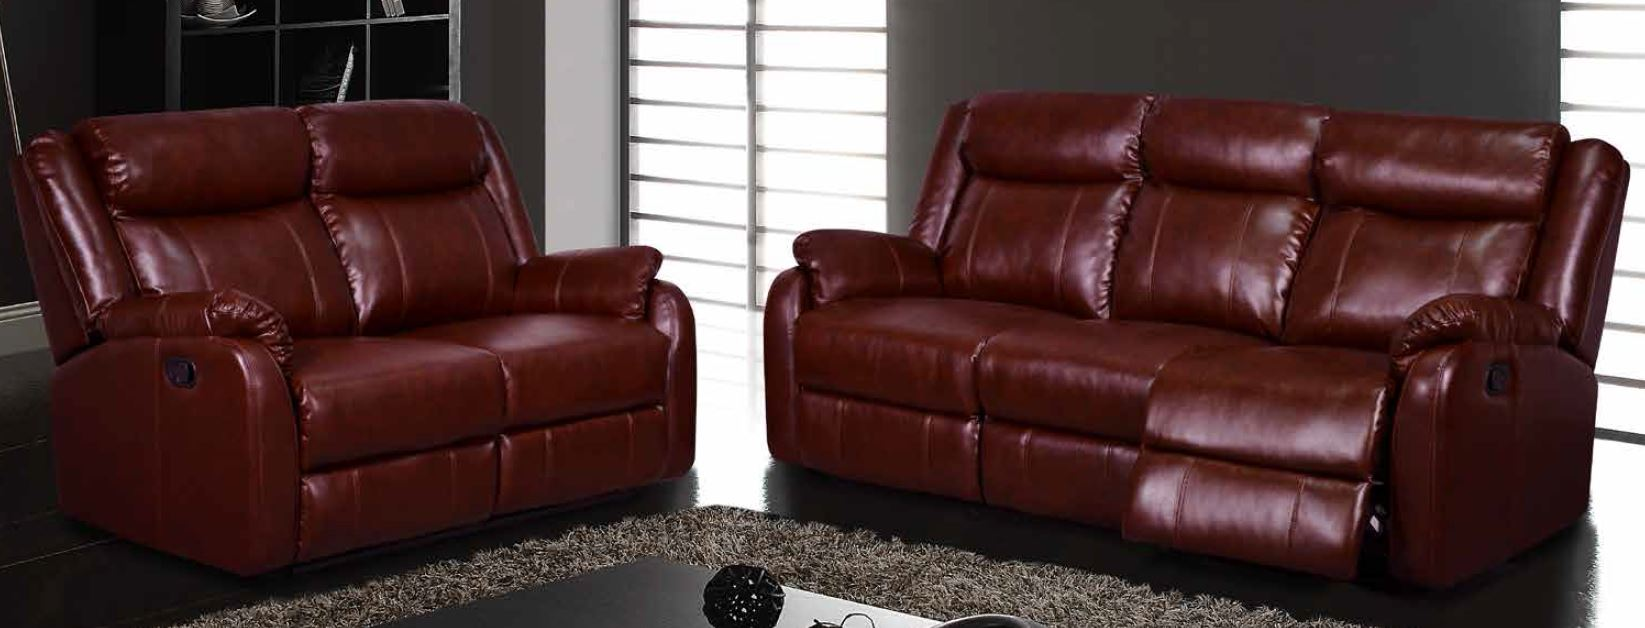 Burgundy Sofa And Loveseat Modern Leather